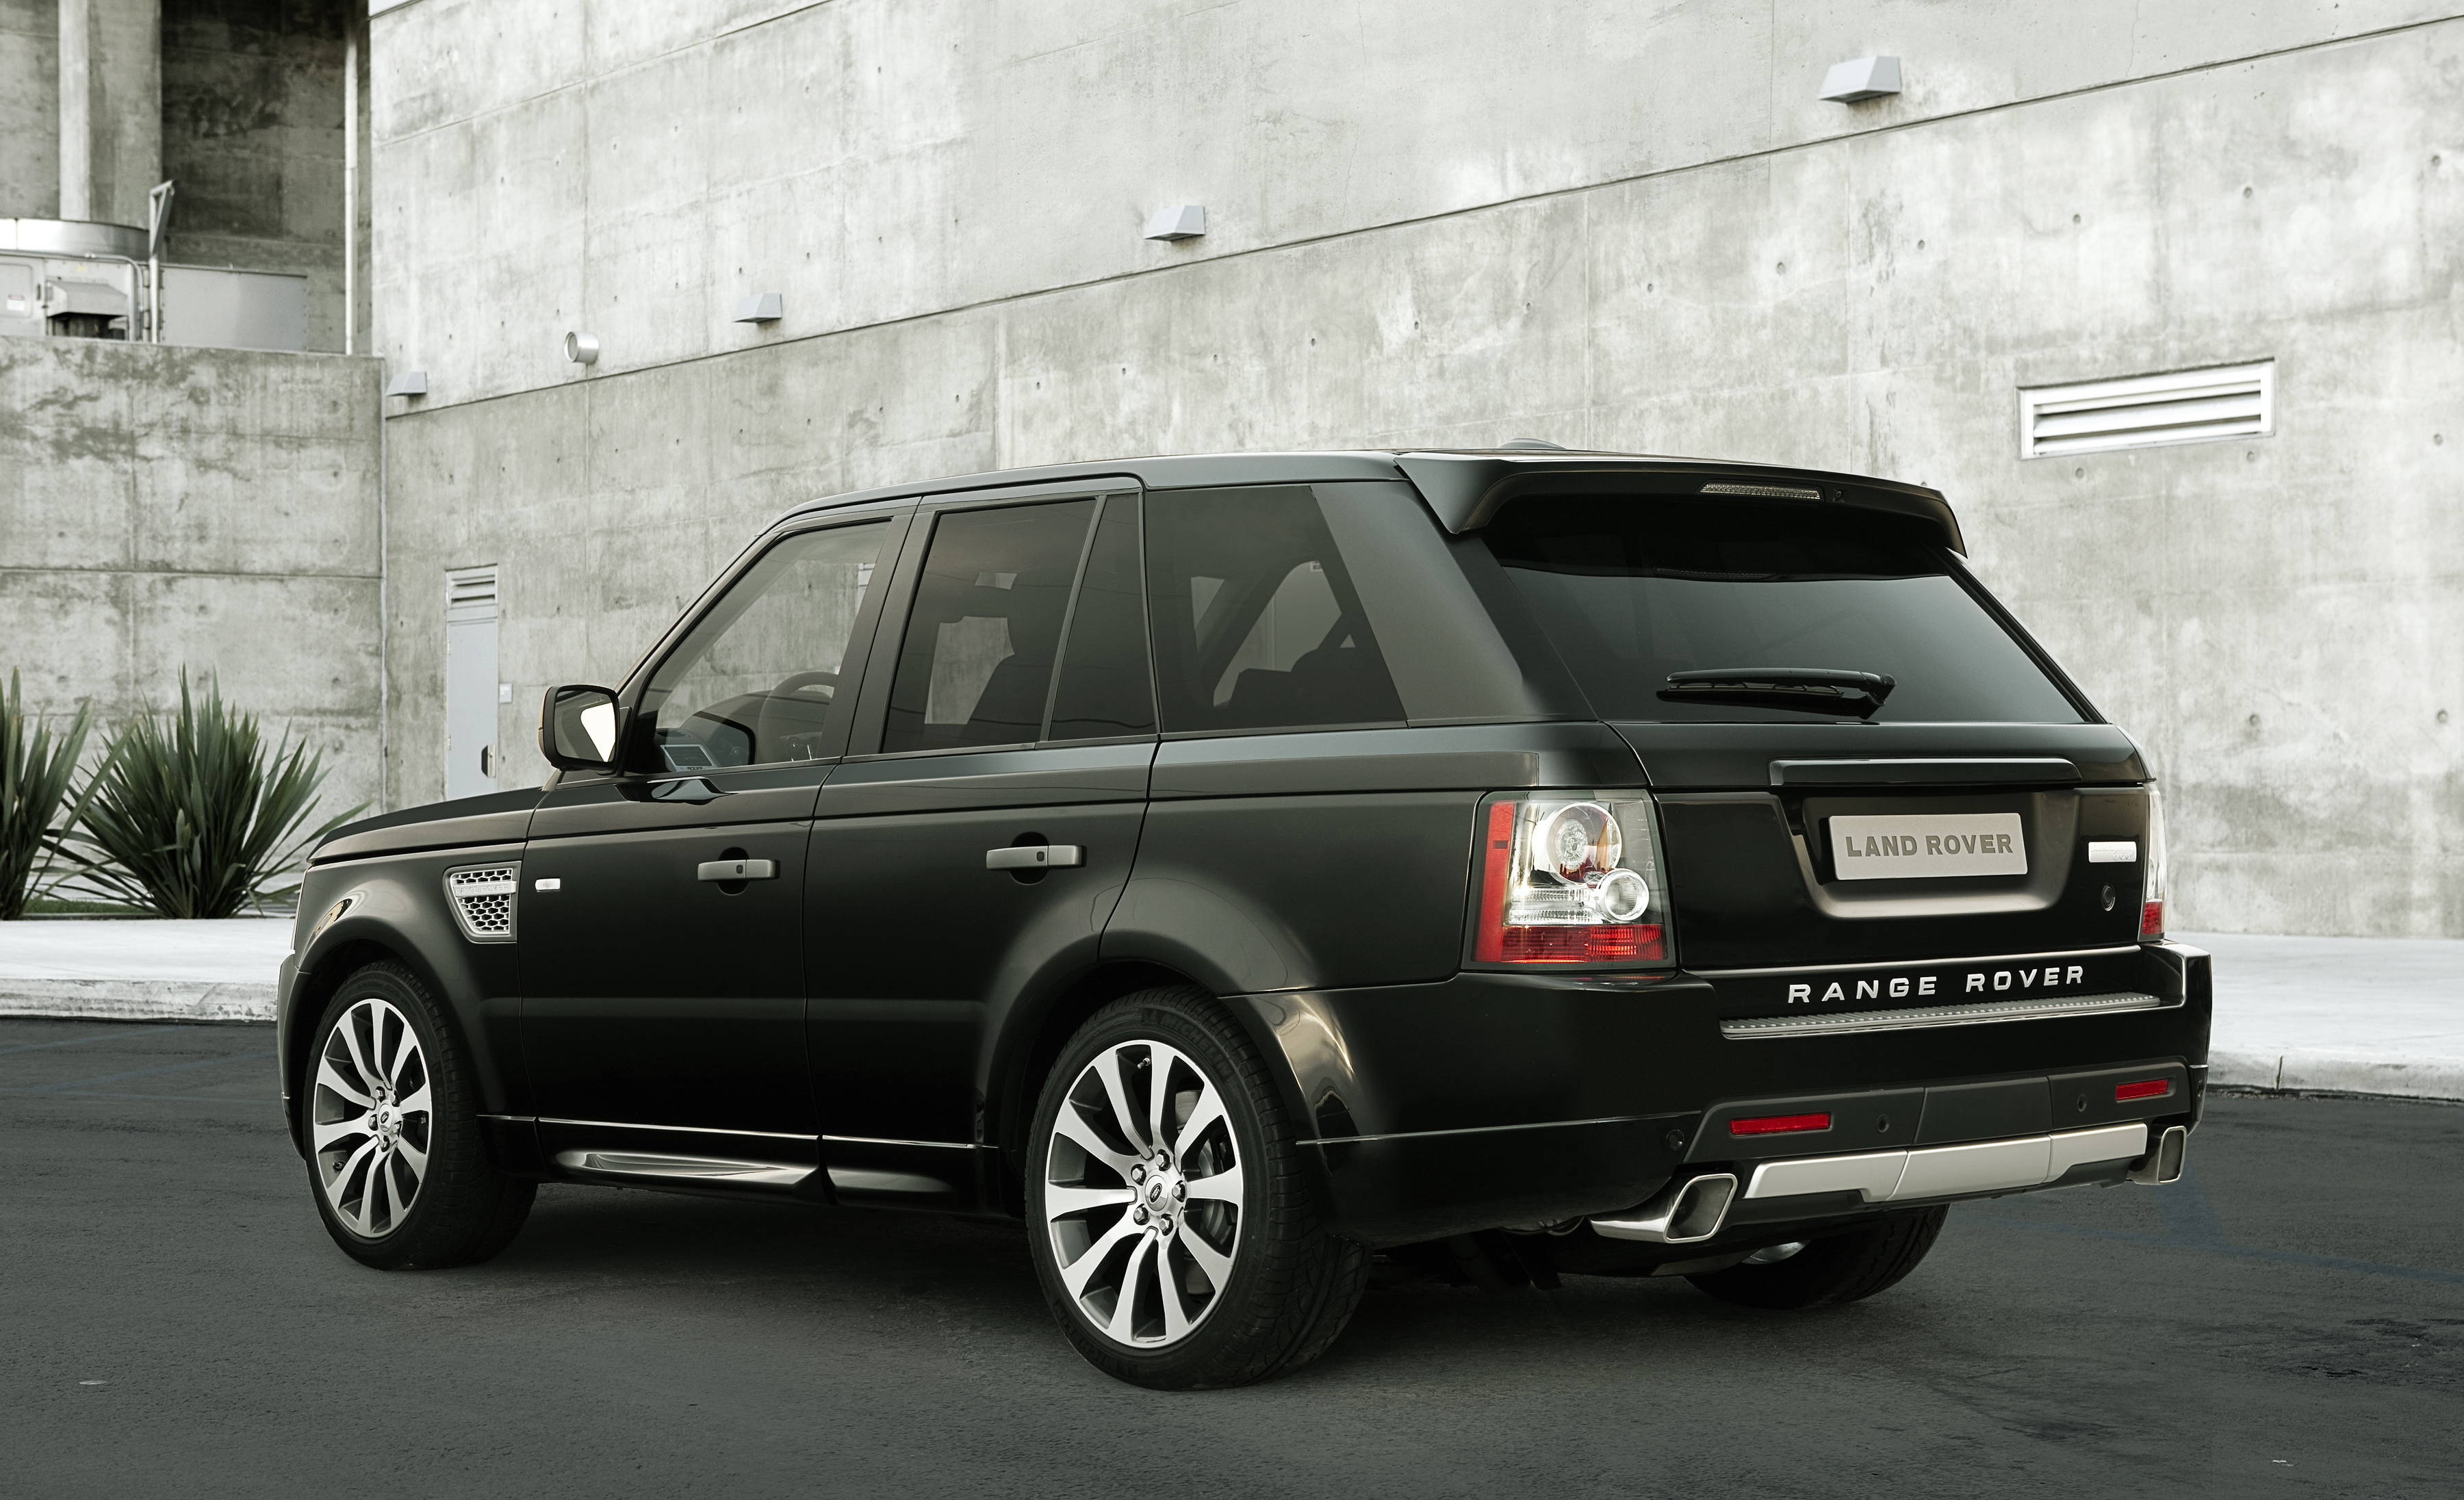 RANGE ROVER SPORT Review and photos